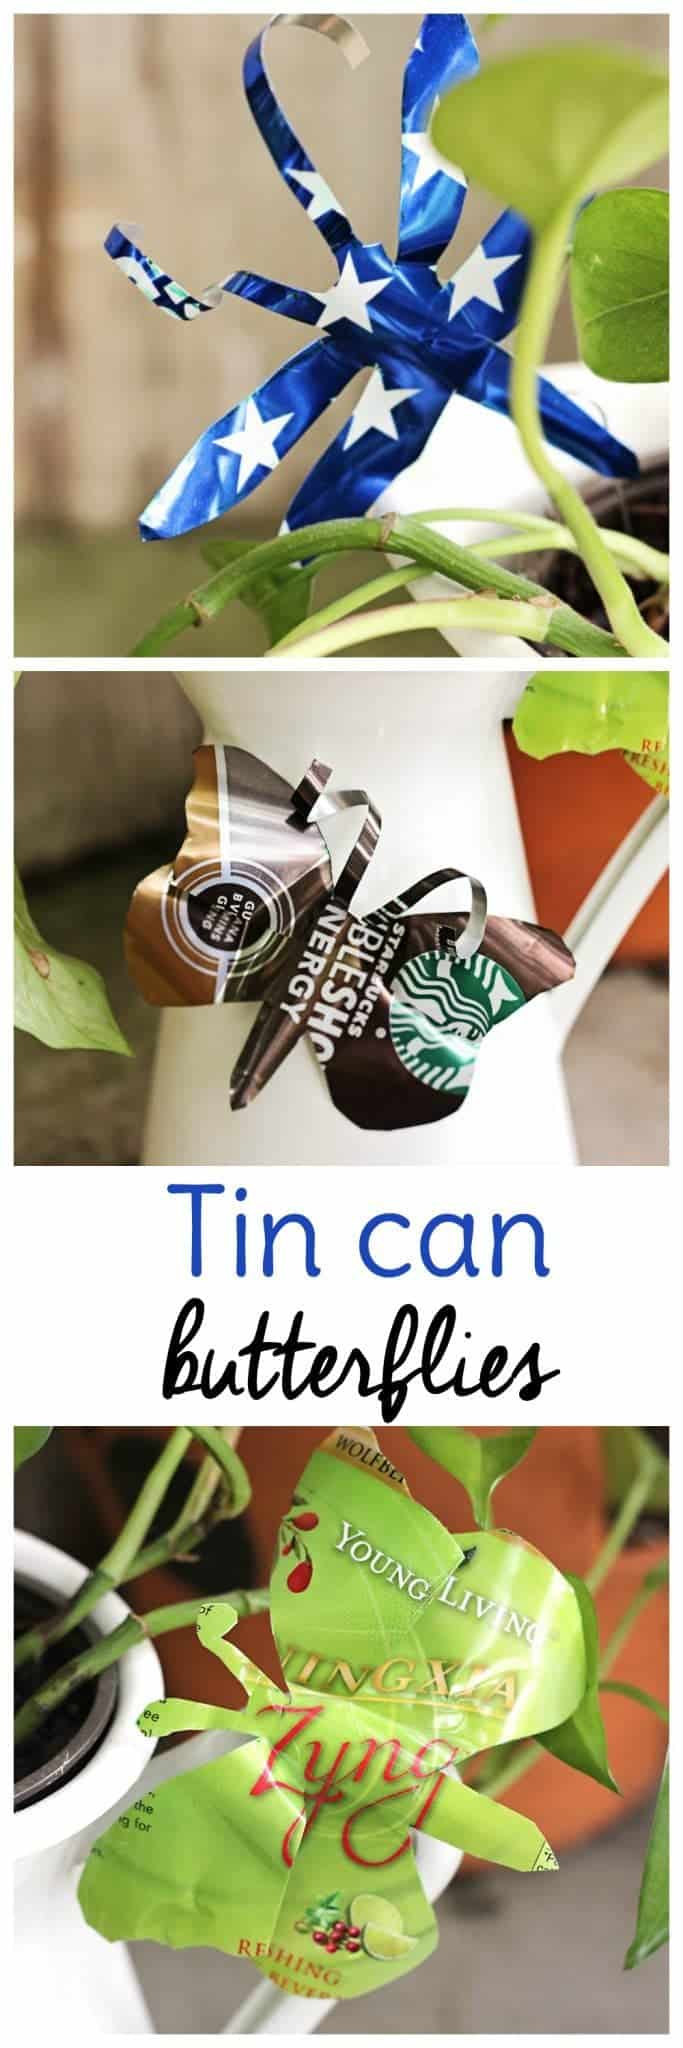 upcycle tin cans into butterflies   sweet t makes three